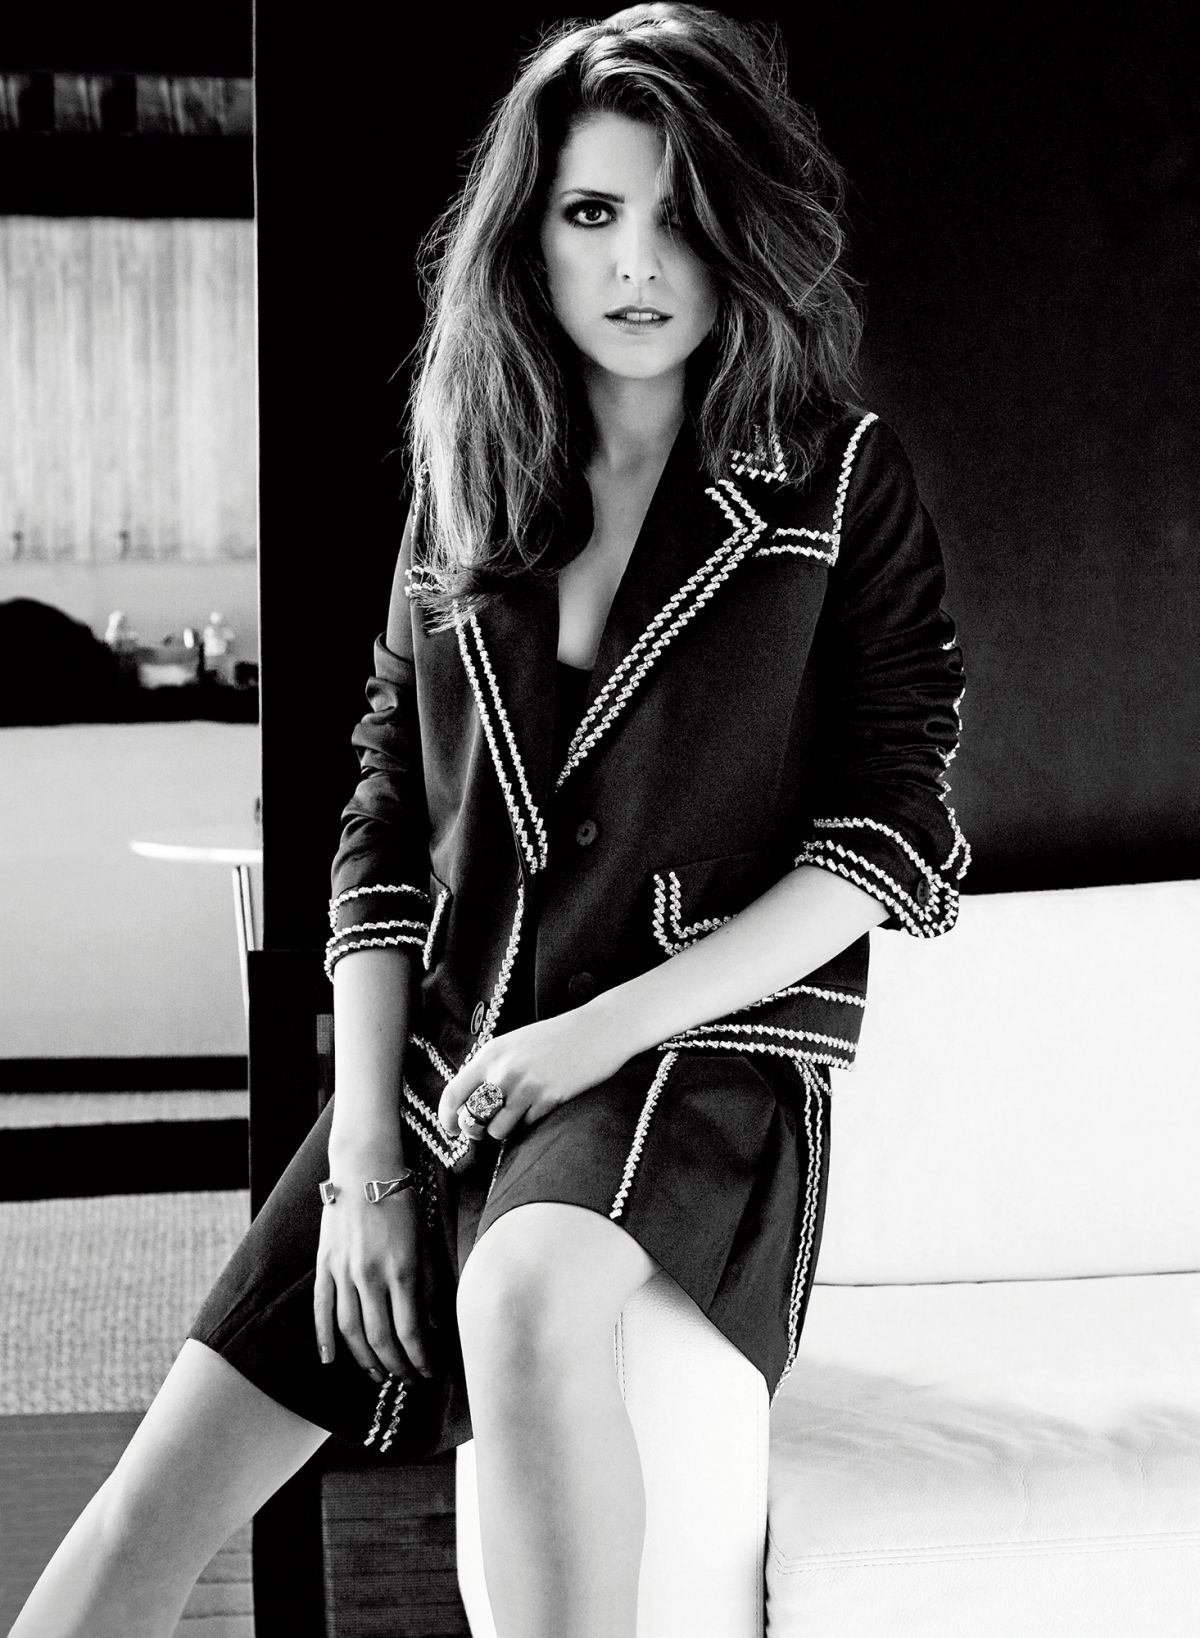 Anna Kendrick In Marie Claire Magazine December 2014